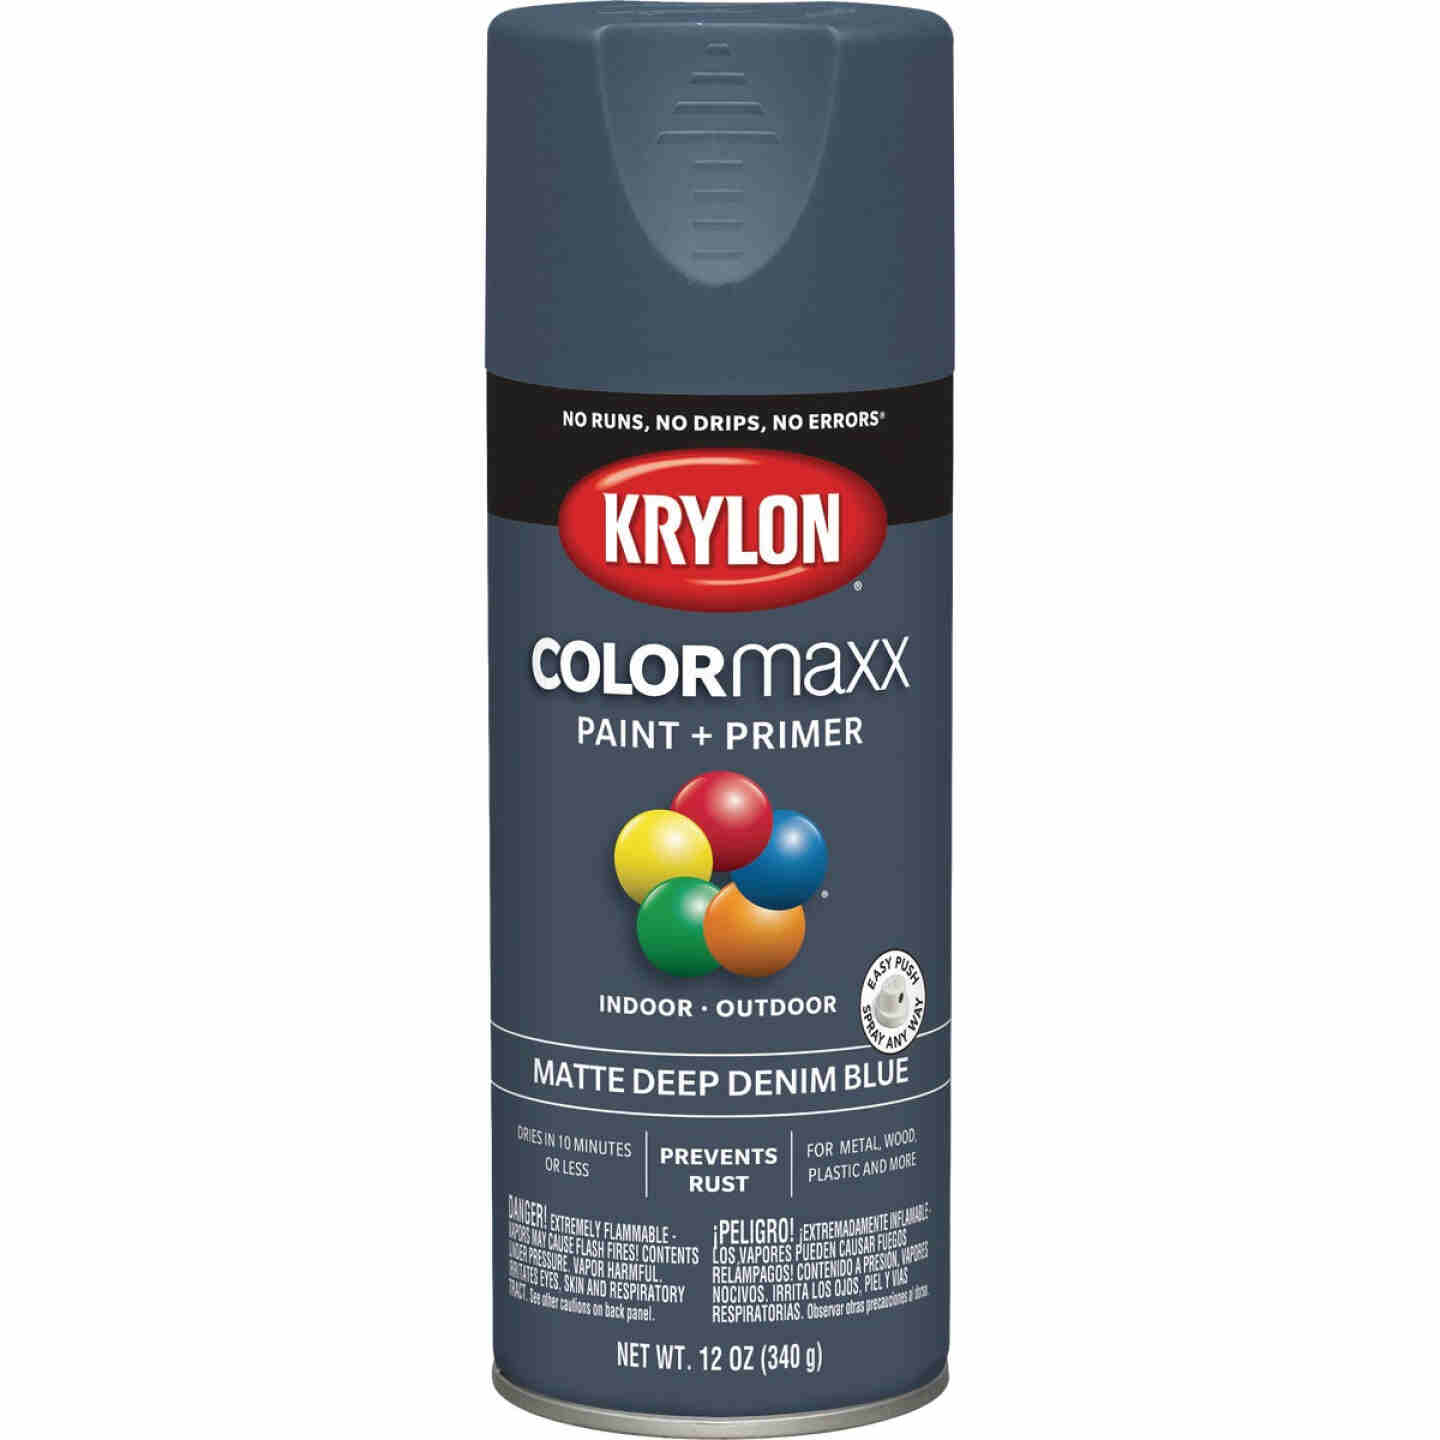 Krylon Colormaxx Matte Spray Paint & Primer, Denim Blue Image 1